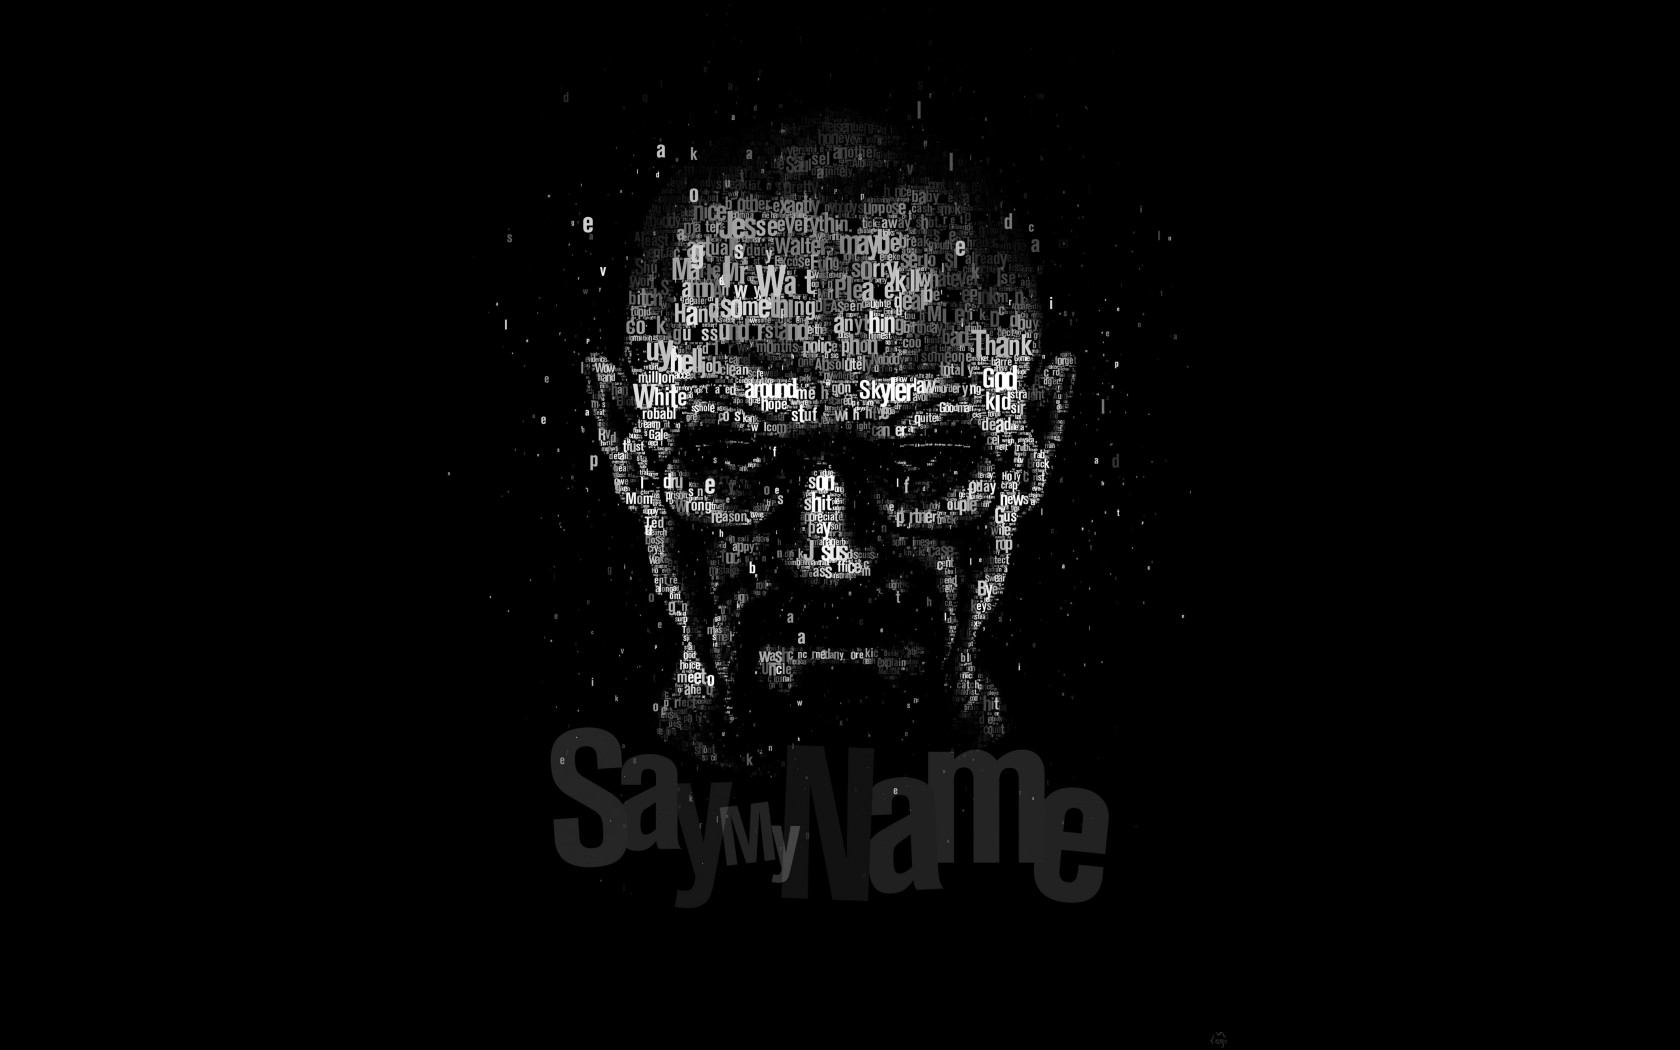 Say My Name - Typography Art Wallpaper for Desktop 1680x1050